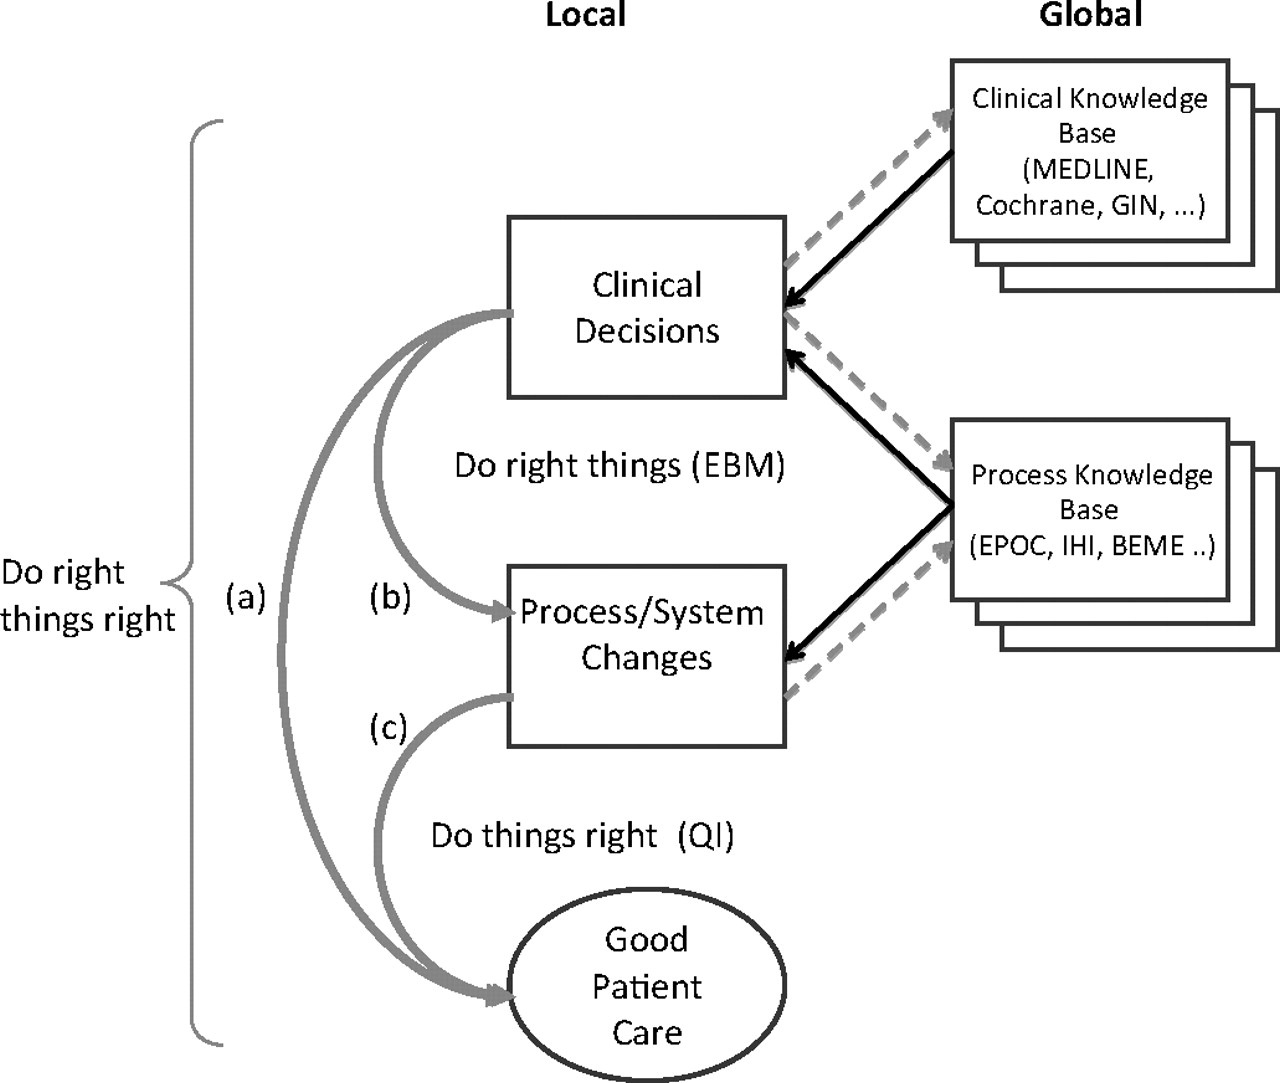 evidence based practice for quality improvement Evidence-based practices need to be hardwired—thoroughly engrained in frontline practices—to result in patient safety and quality improvements learn more from the ebook healthcare: a better way healthcare: a better way describes the health catalyst three system approach to sustainable quality improvement.